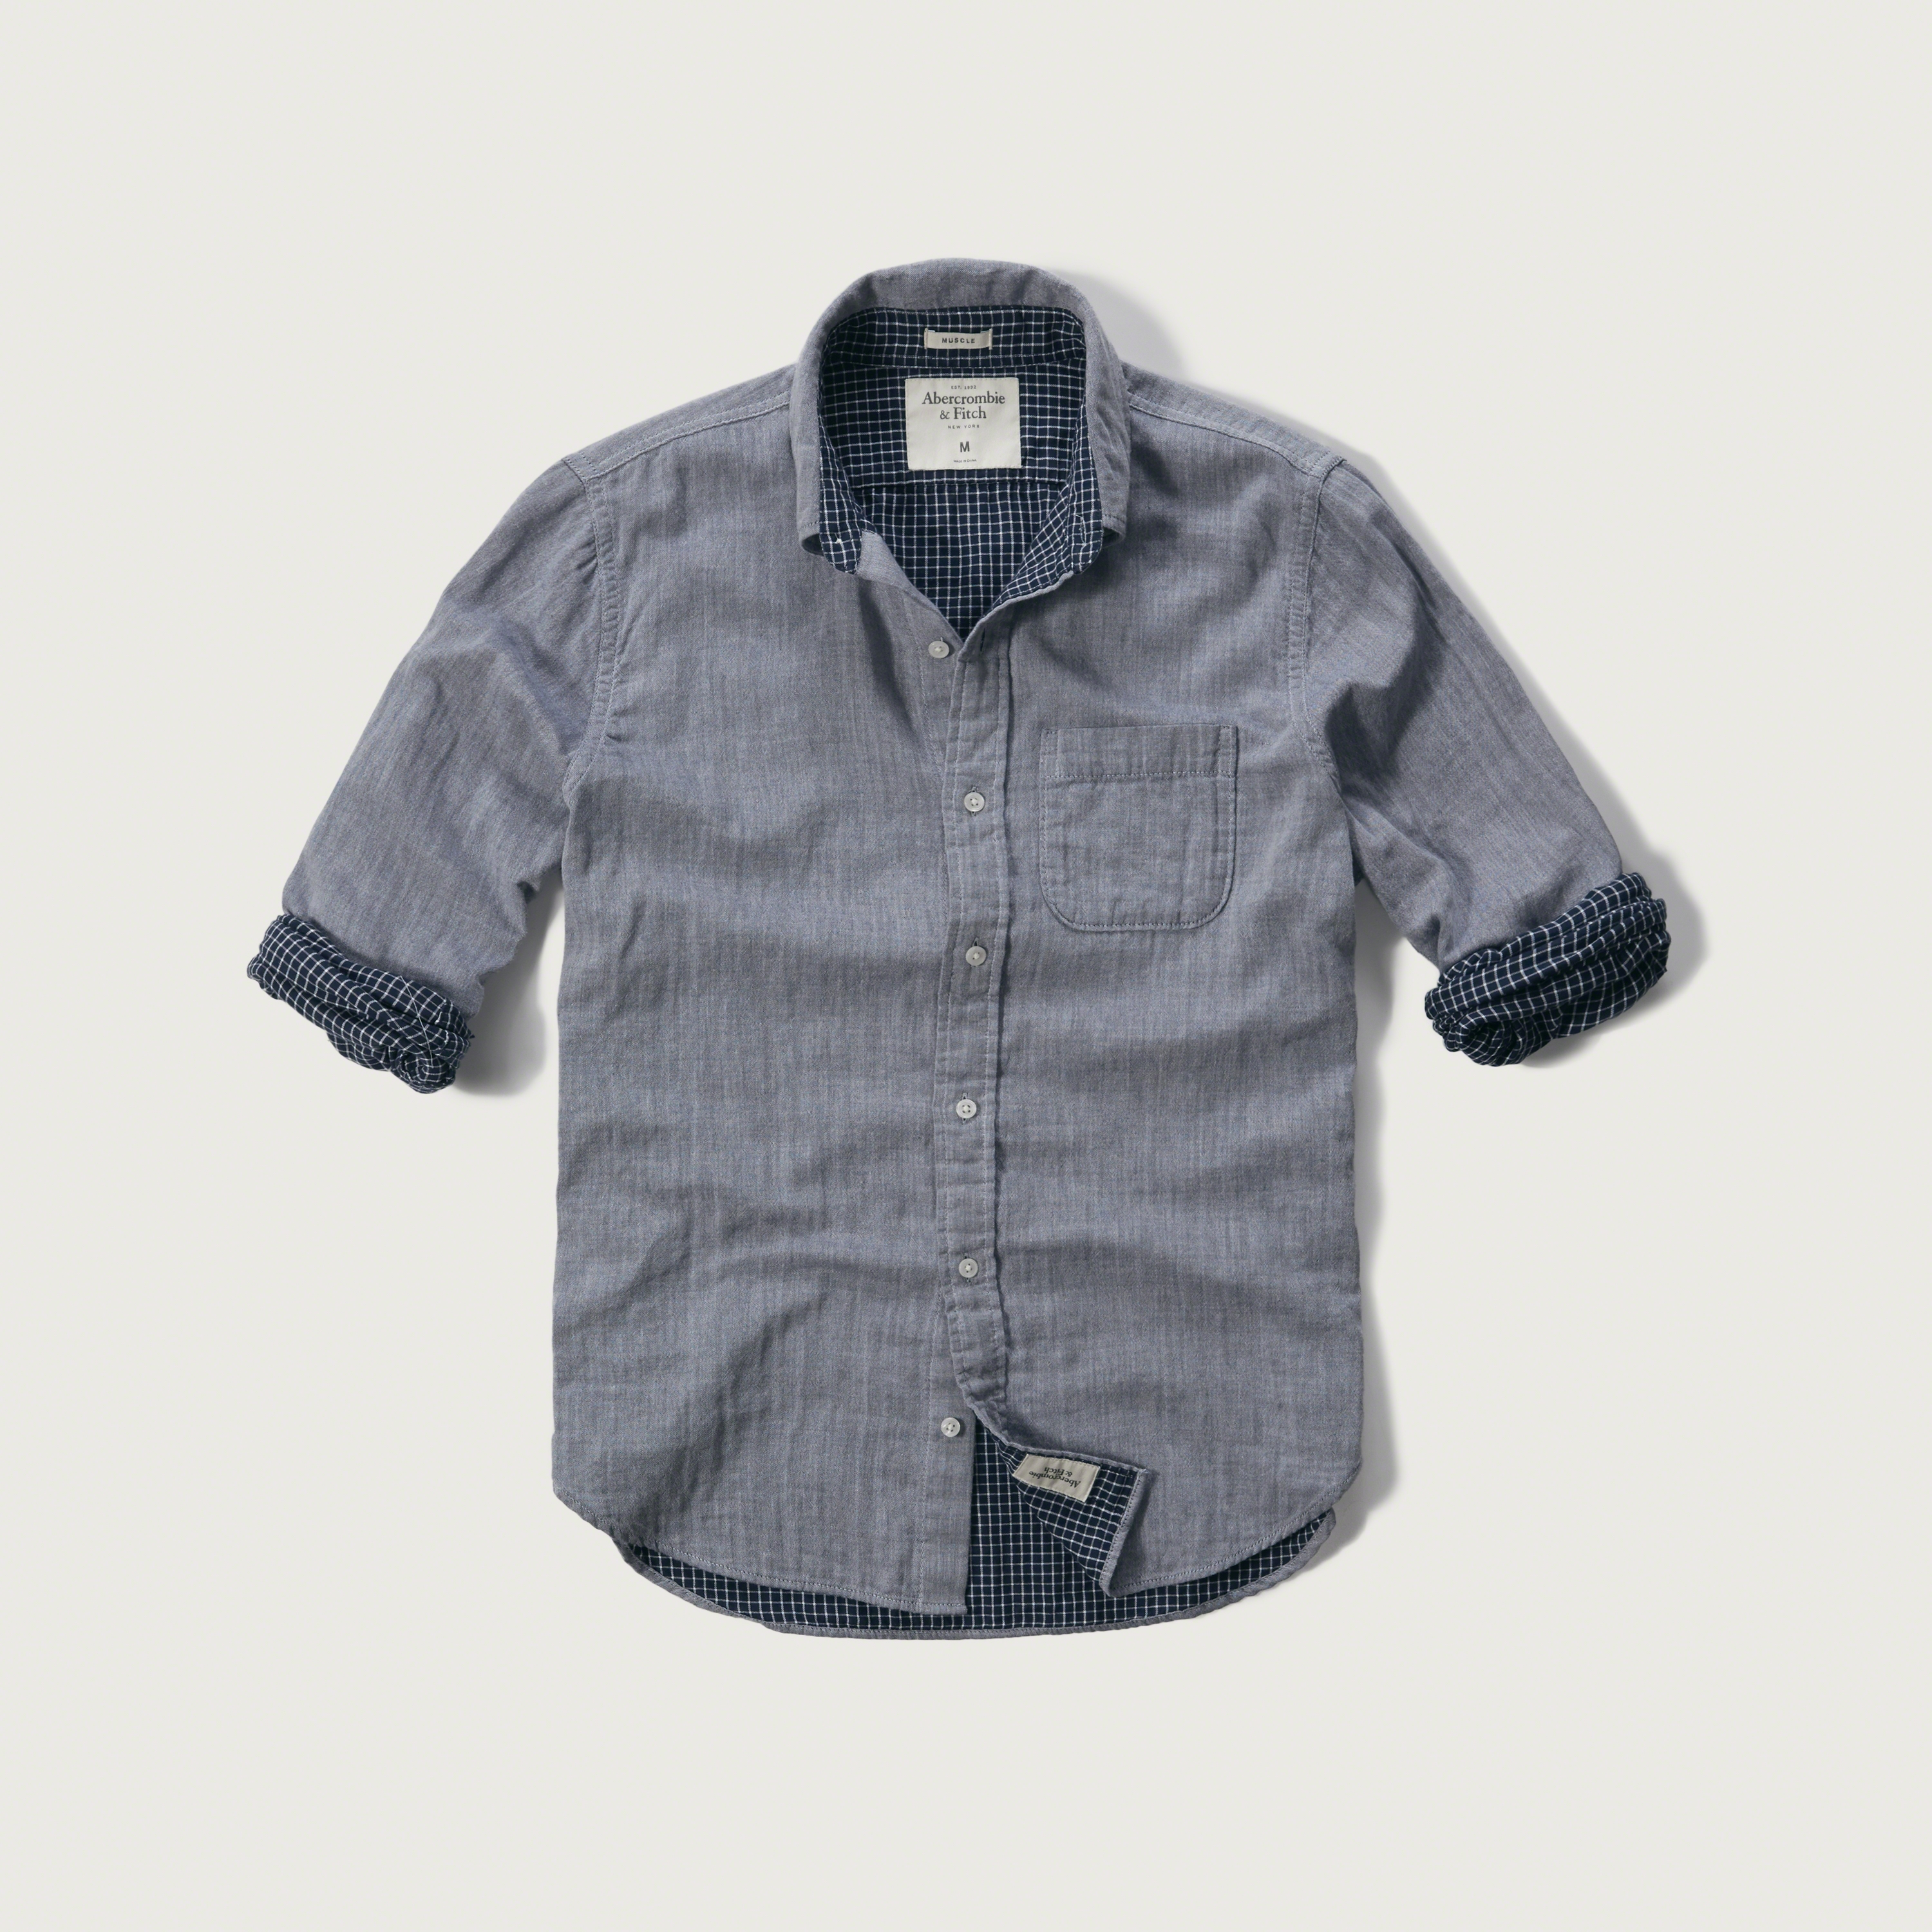 Abercrombie and fitch mens plaid shirts white navy black for Mens dress shirts black friday